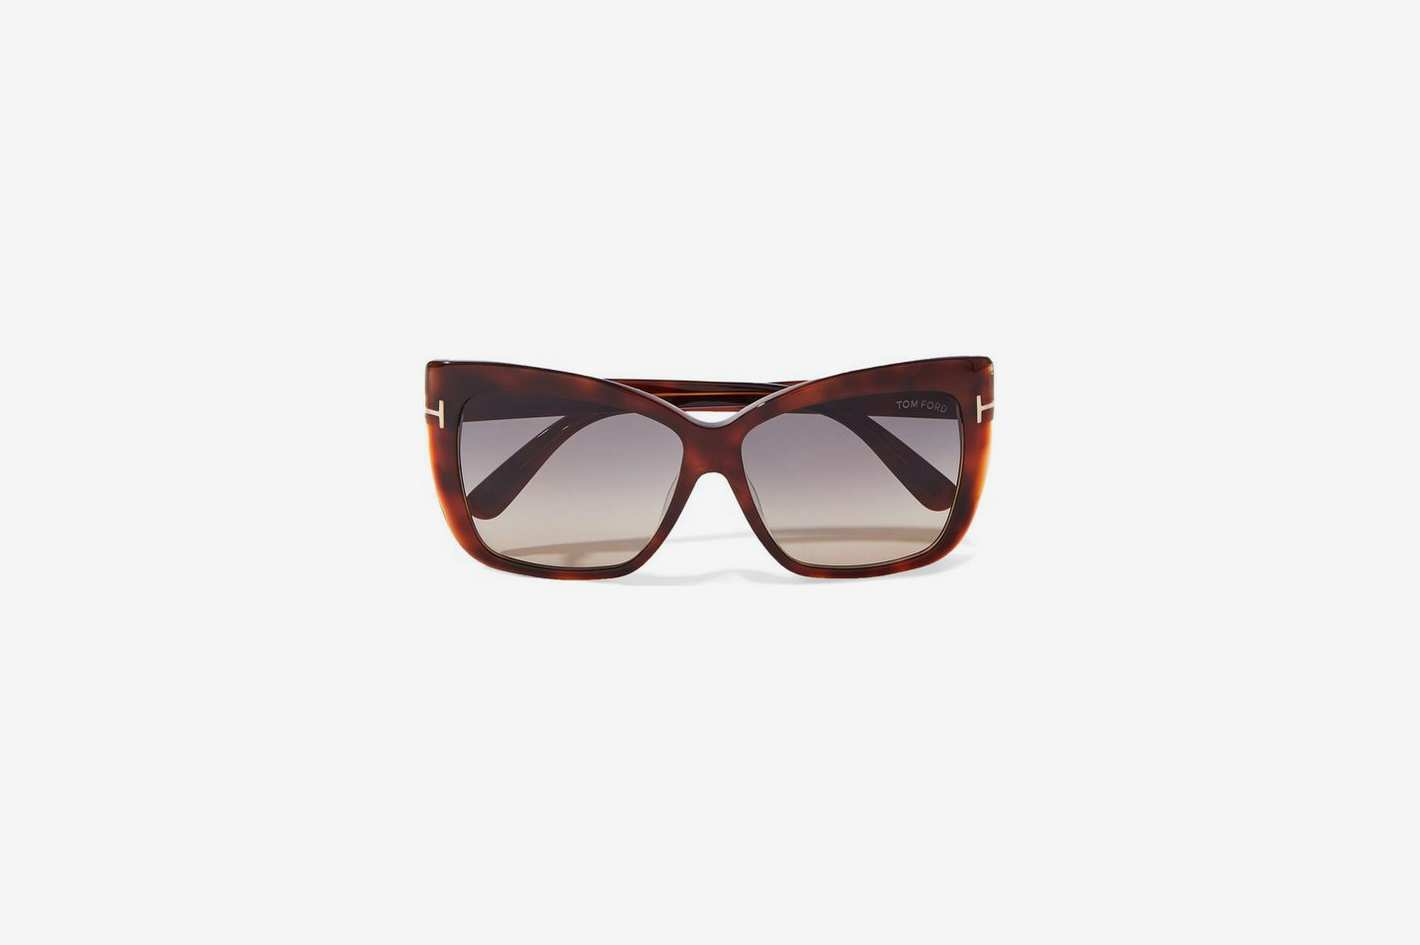 6a8035e3f4f4 Tom Ford Irina Square-frame Acetate Sunglasses